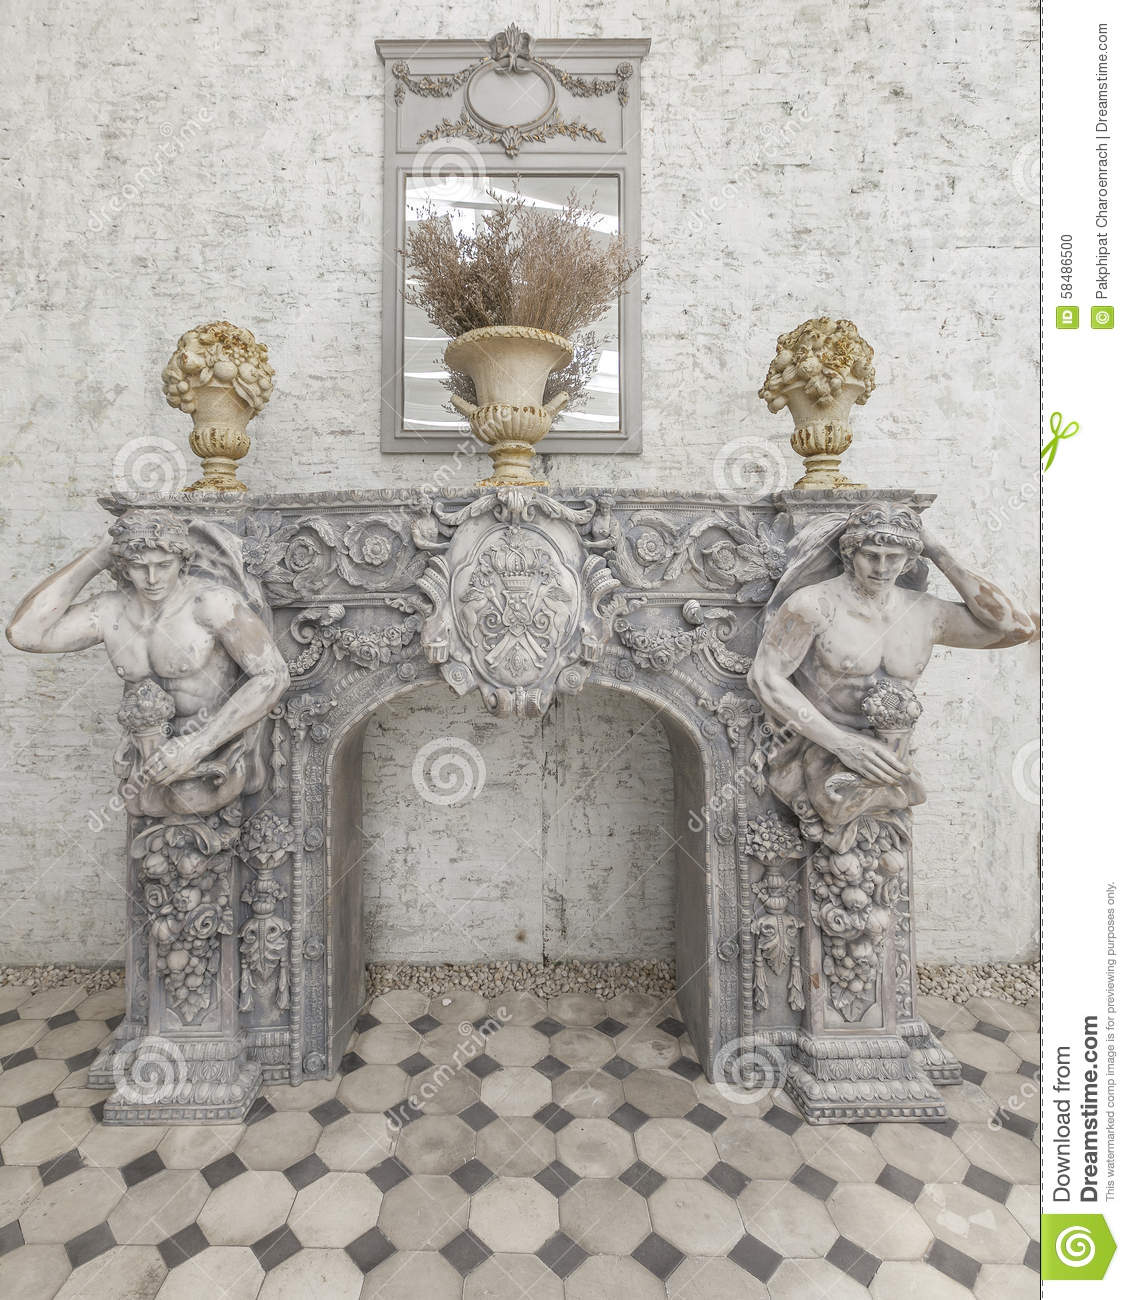 French rococo style stock photo image 58486500 for Decoration platre style francais